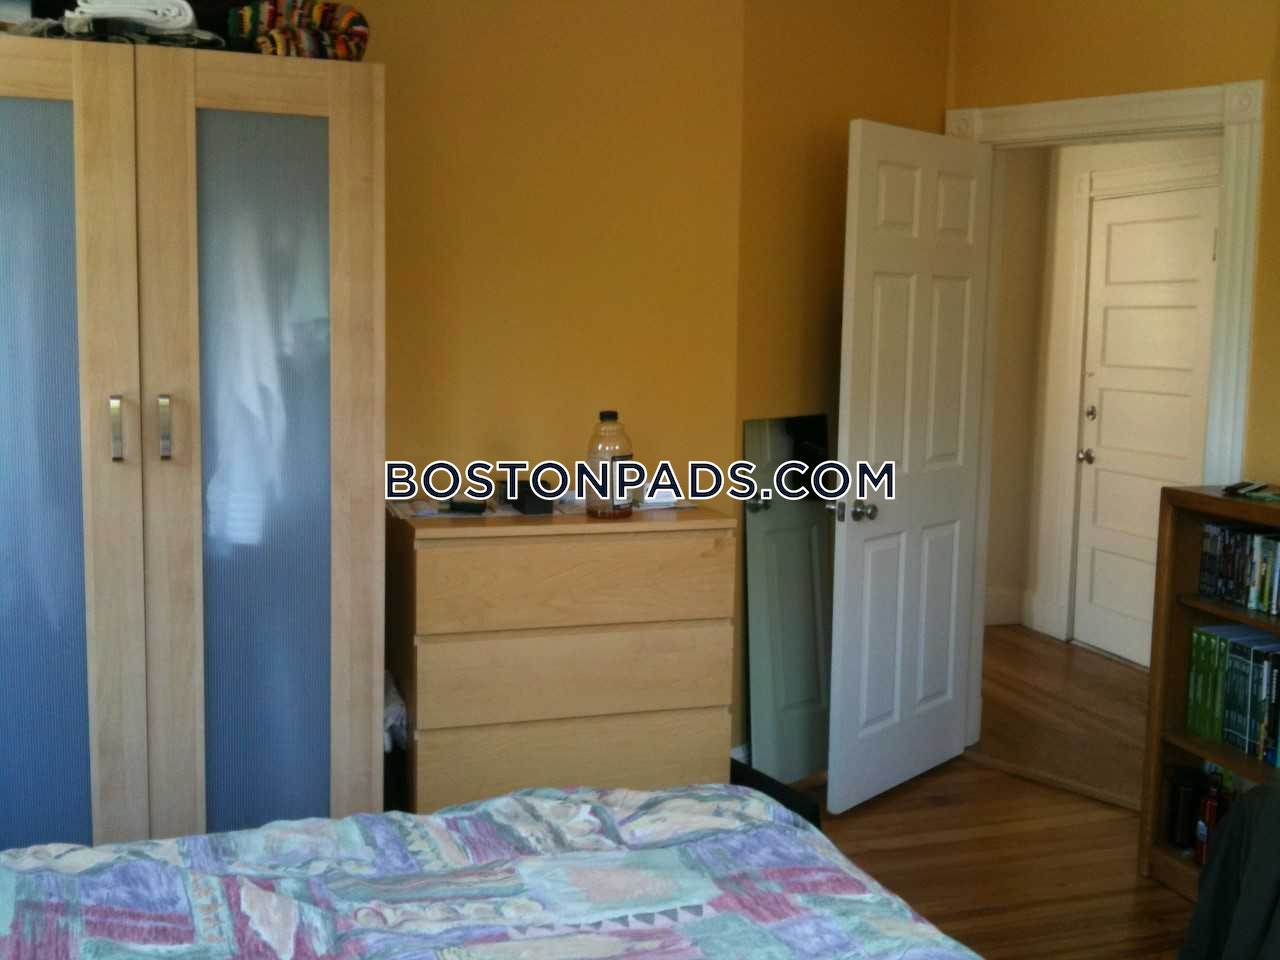 CAMBRIDGE - CENTRAL SQUARE/CAMBRIDGEPORT - $4,950